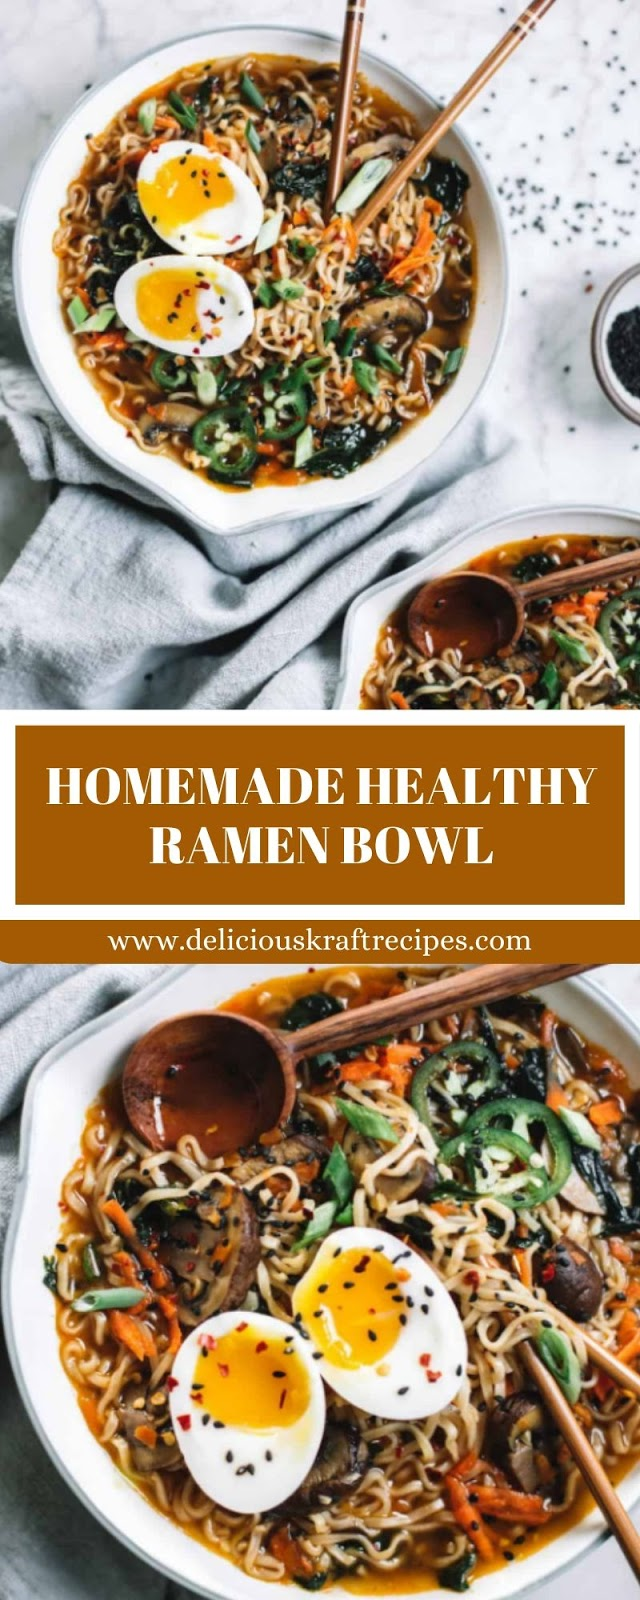 HOMEMADE HEALTHY RAMEN BOWL